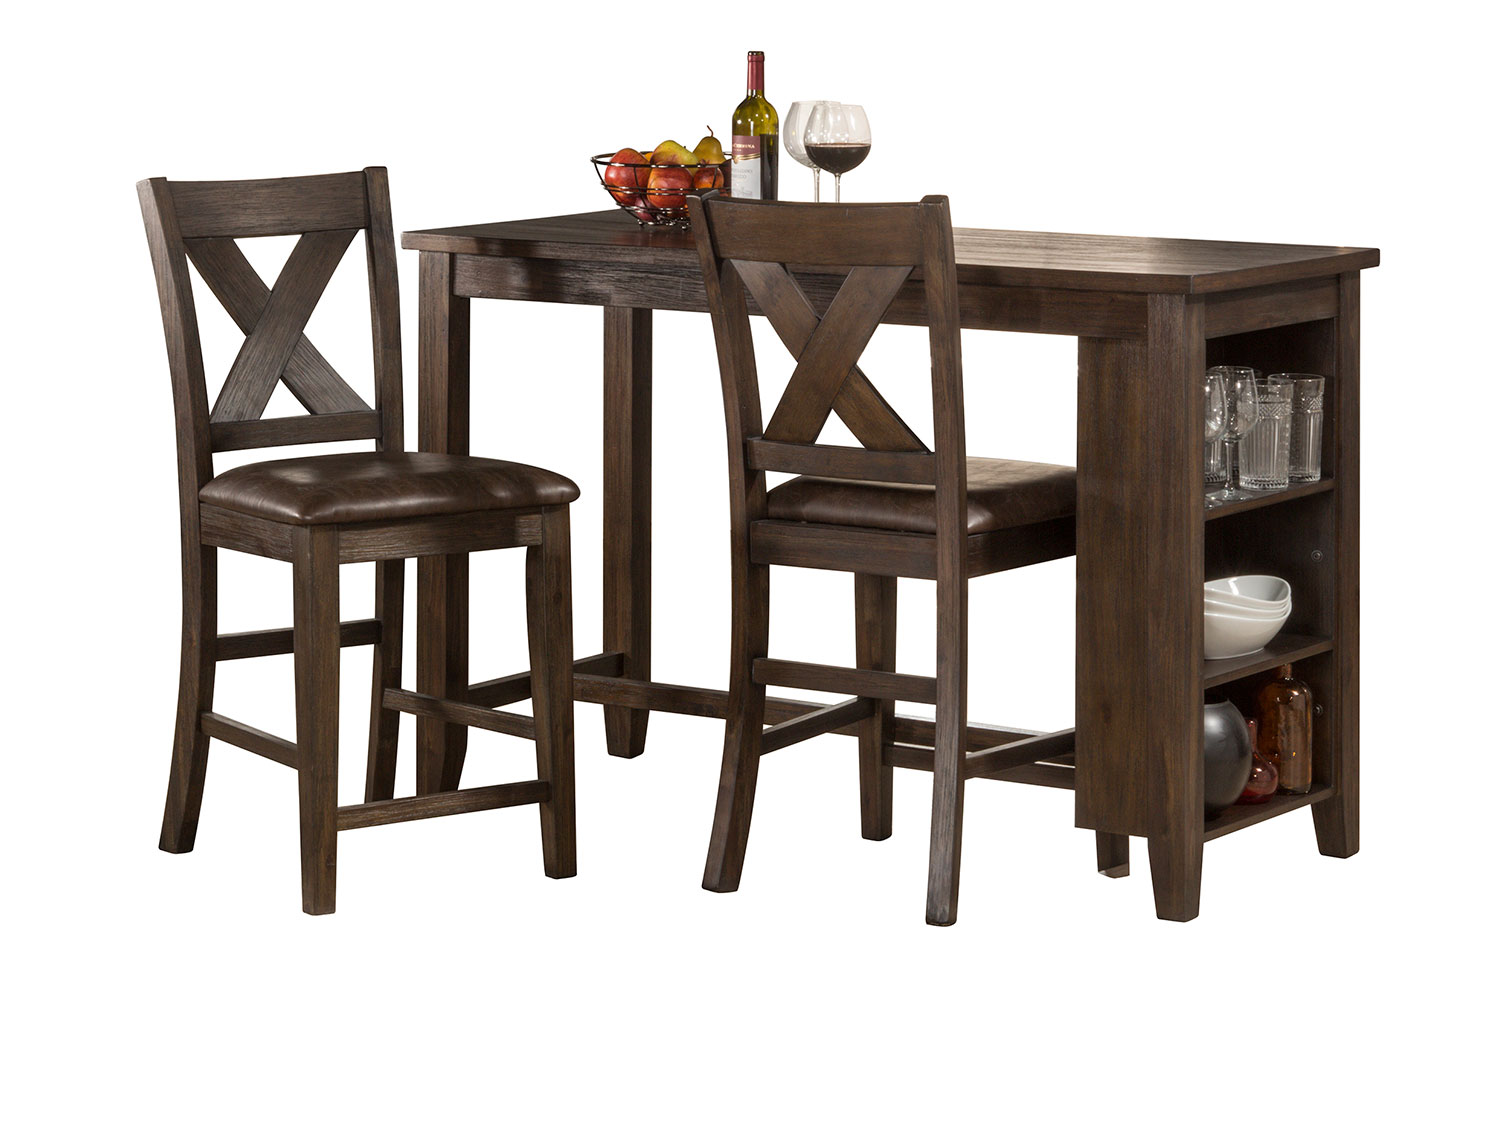 Hillsdale Spencer 3 Piece Counter Height Dining Set with X-Back Counter Height Stools - Dark Espresso